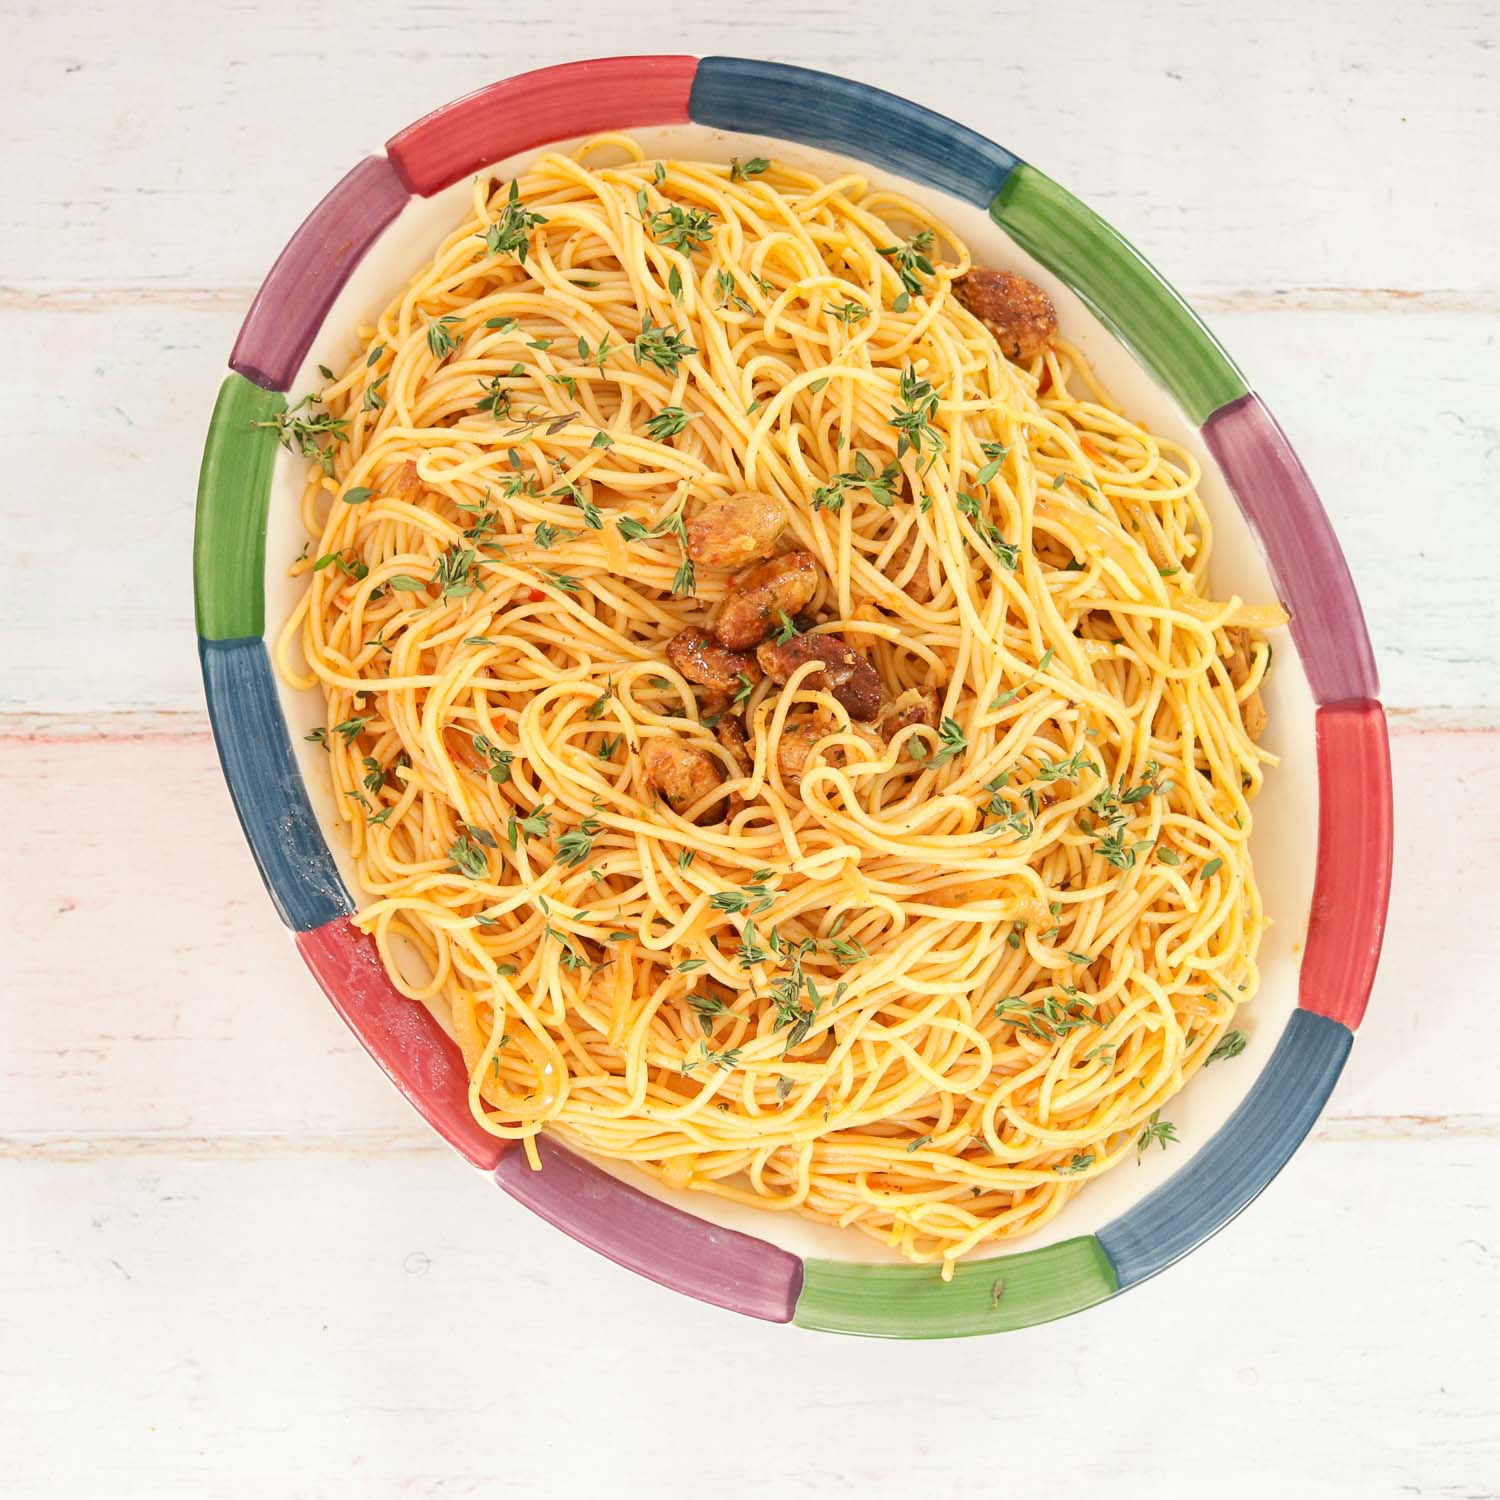 plate of spaghetti with sausage